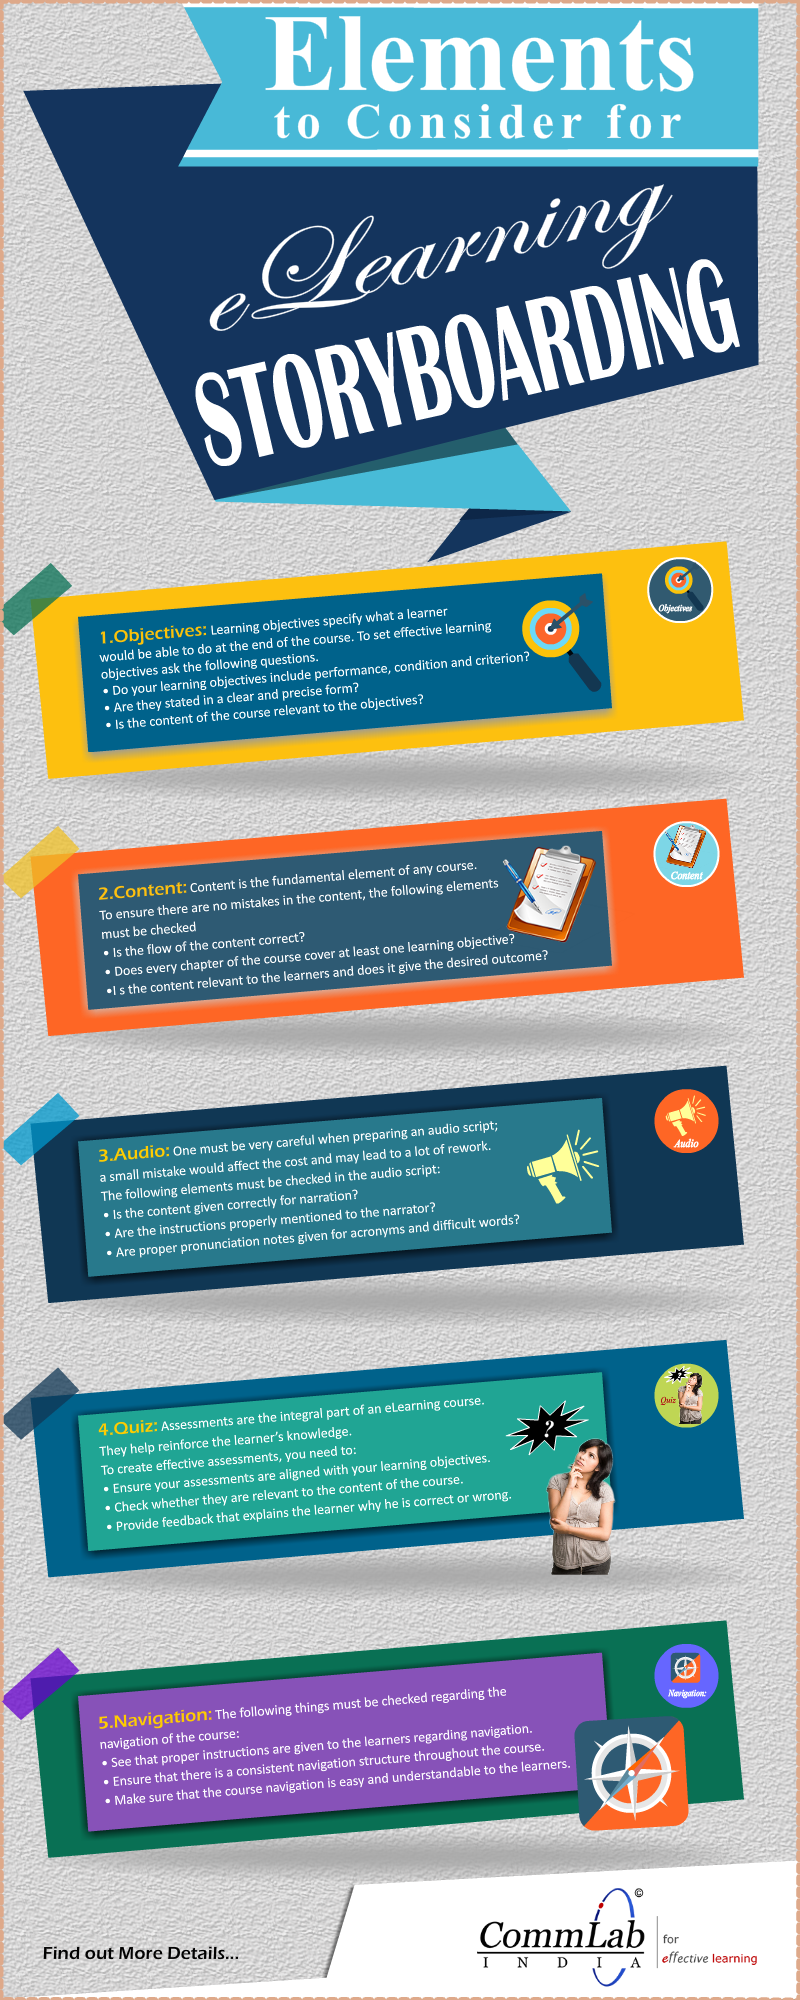 Creation of an Effective E-learning Storyboard - An Infographic